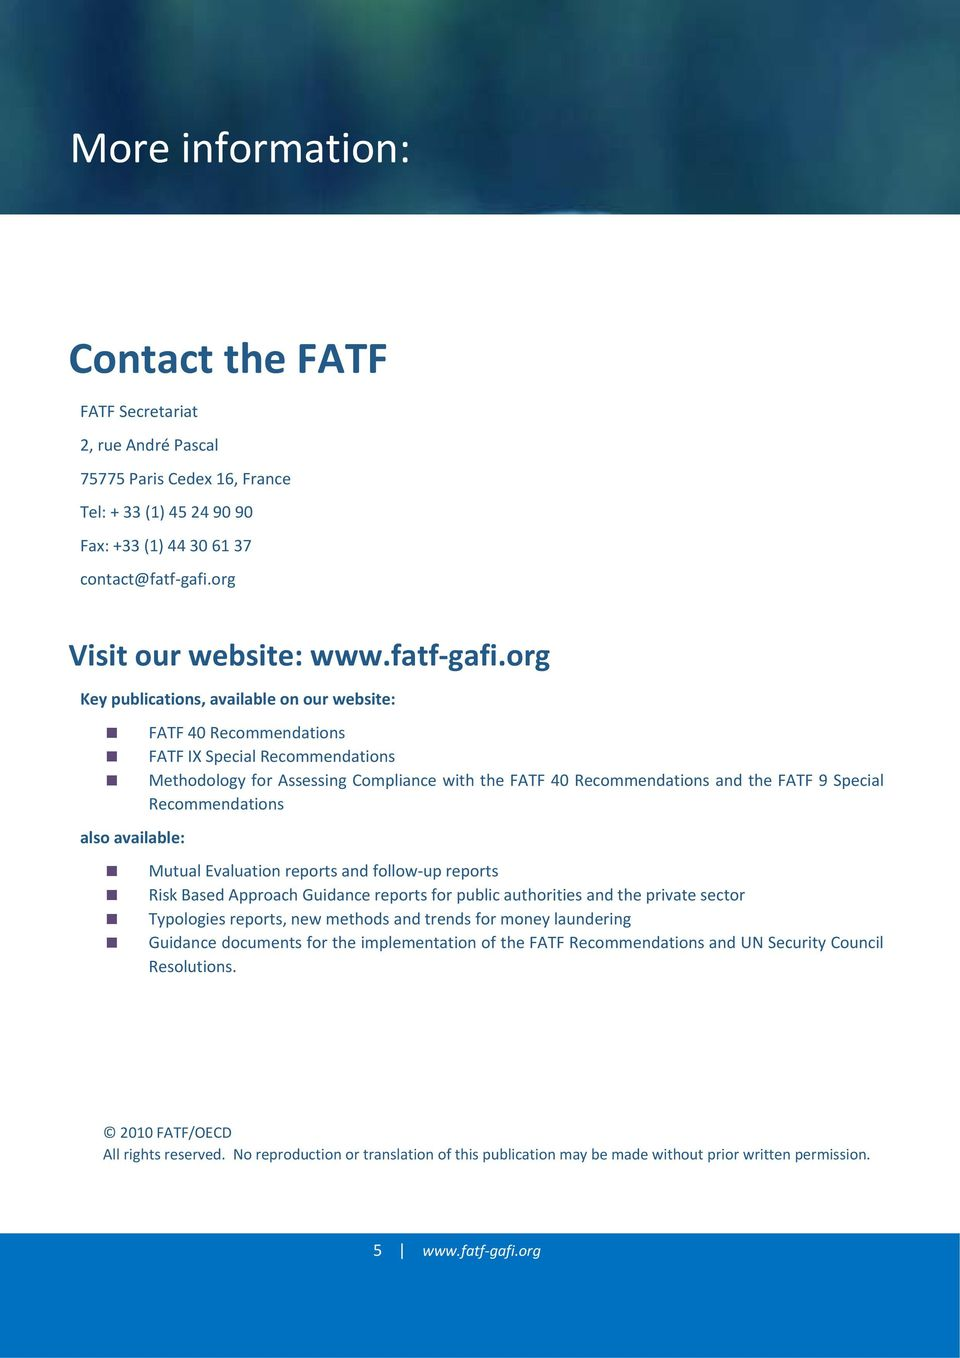 org Key publications, available on our website: also available: FATF 40 Recommendations FATF IX Special Recommendations Methodology for Assessing Compliance with the FATF 40 Recommendations and the